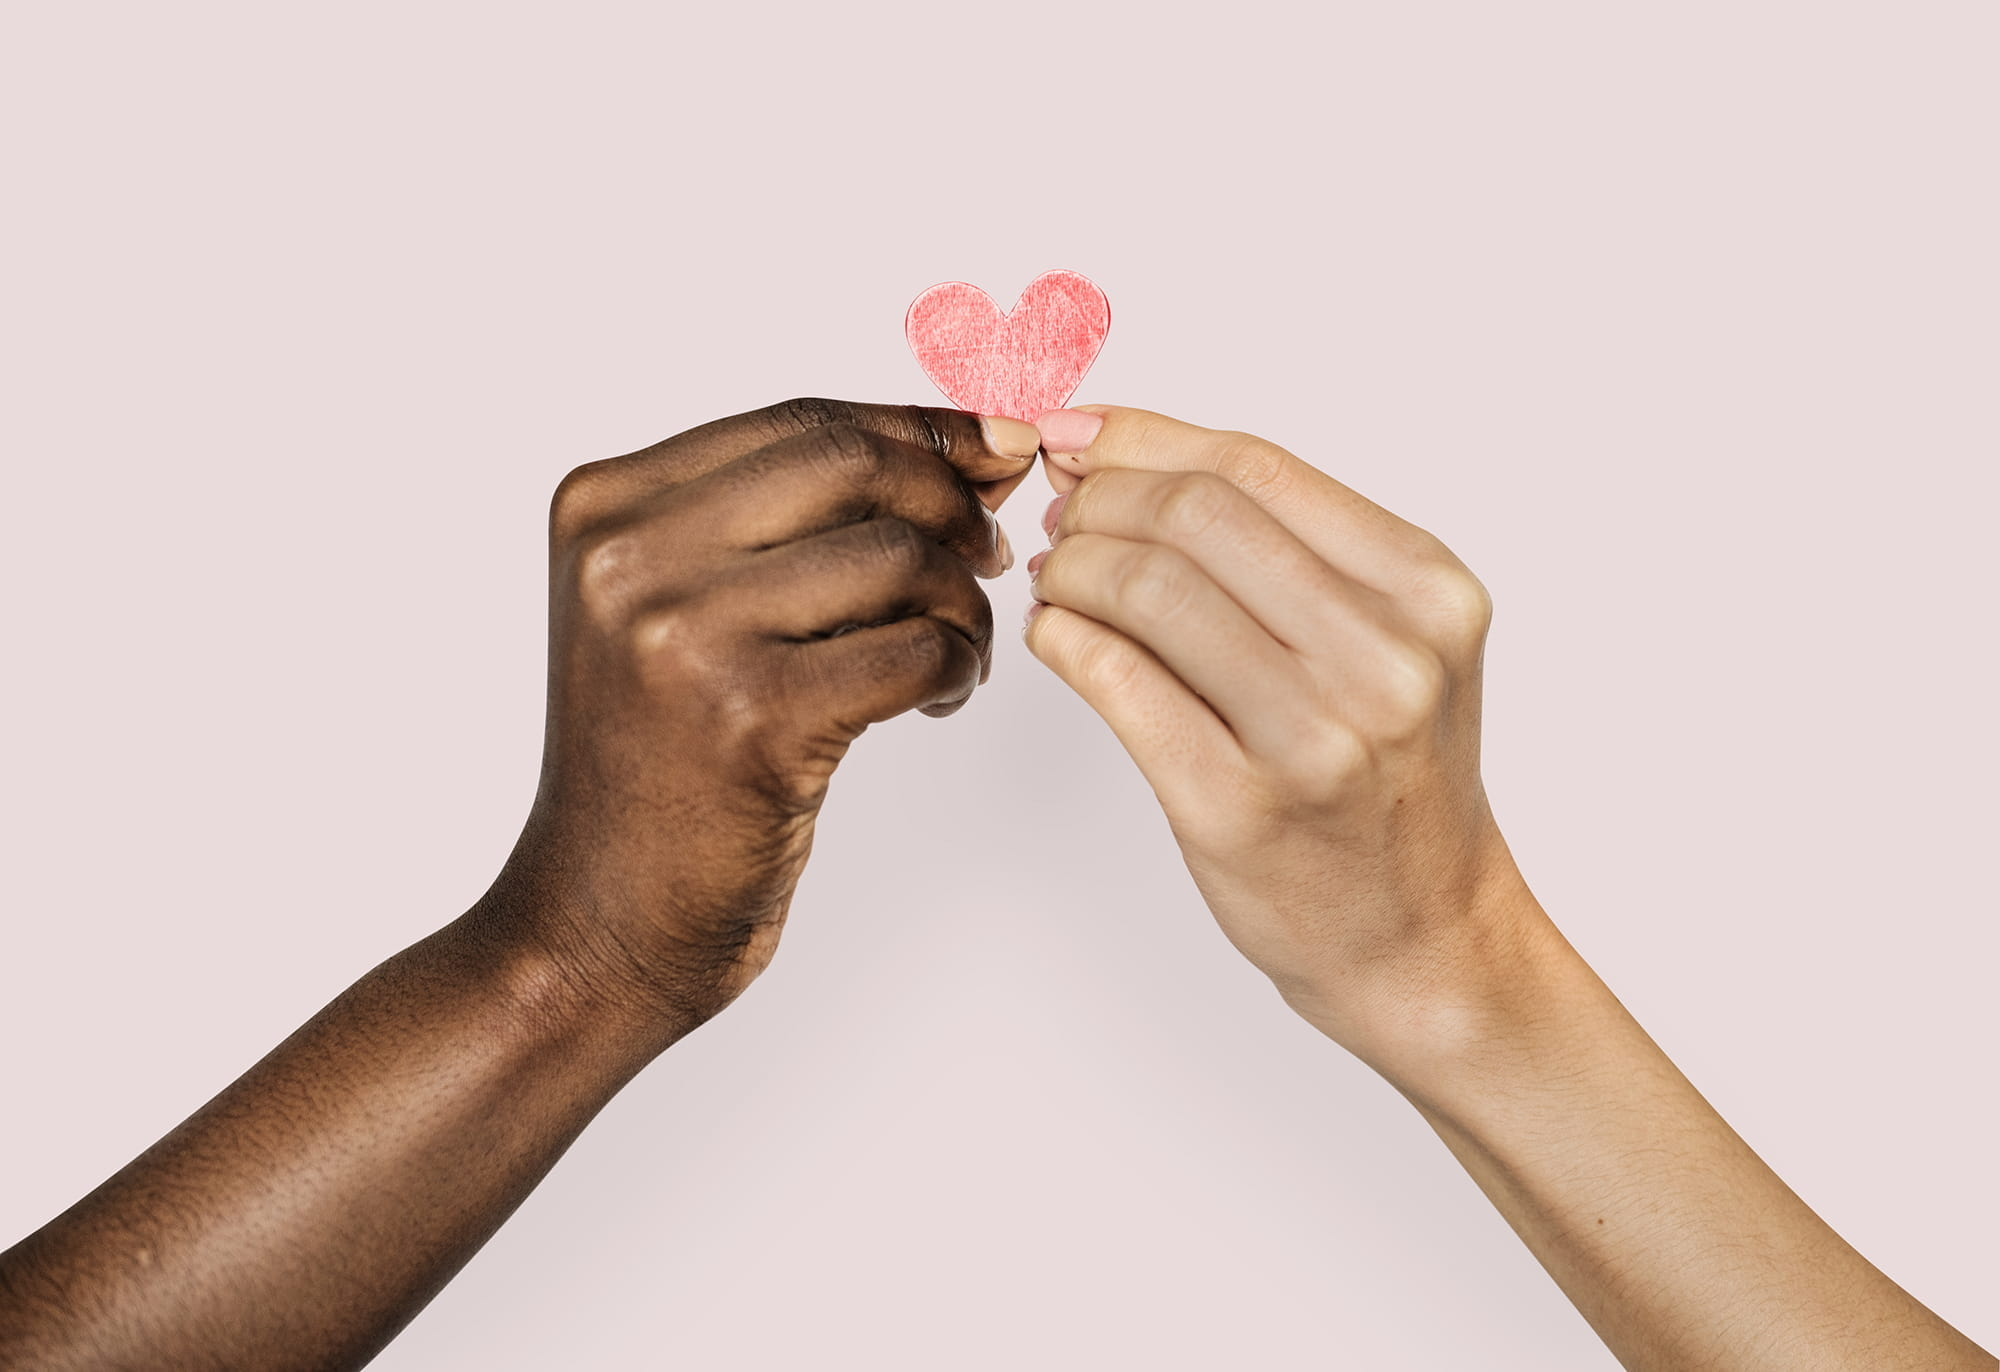 Two hands of different people holding a paper heart